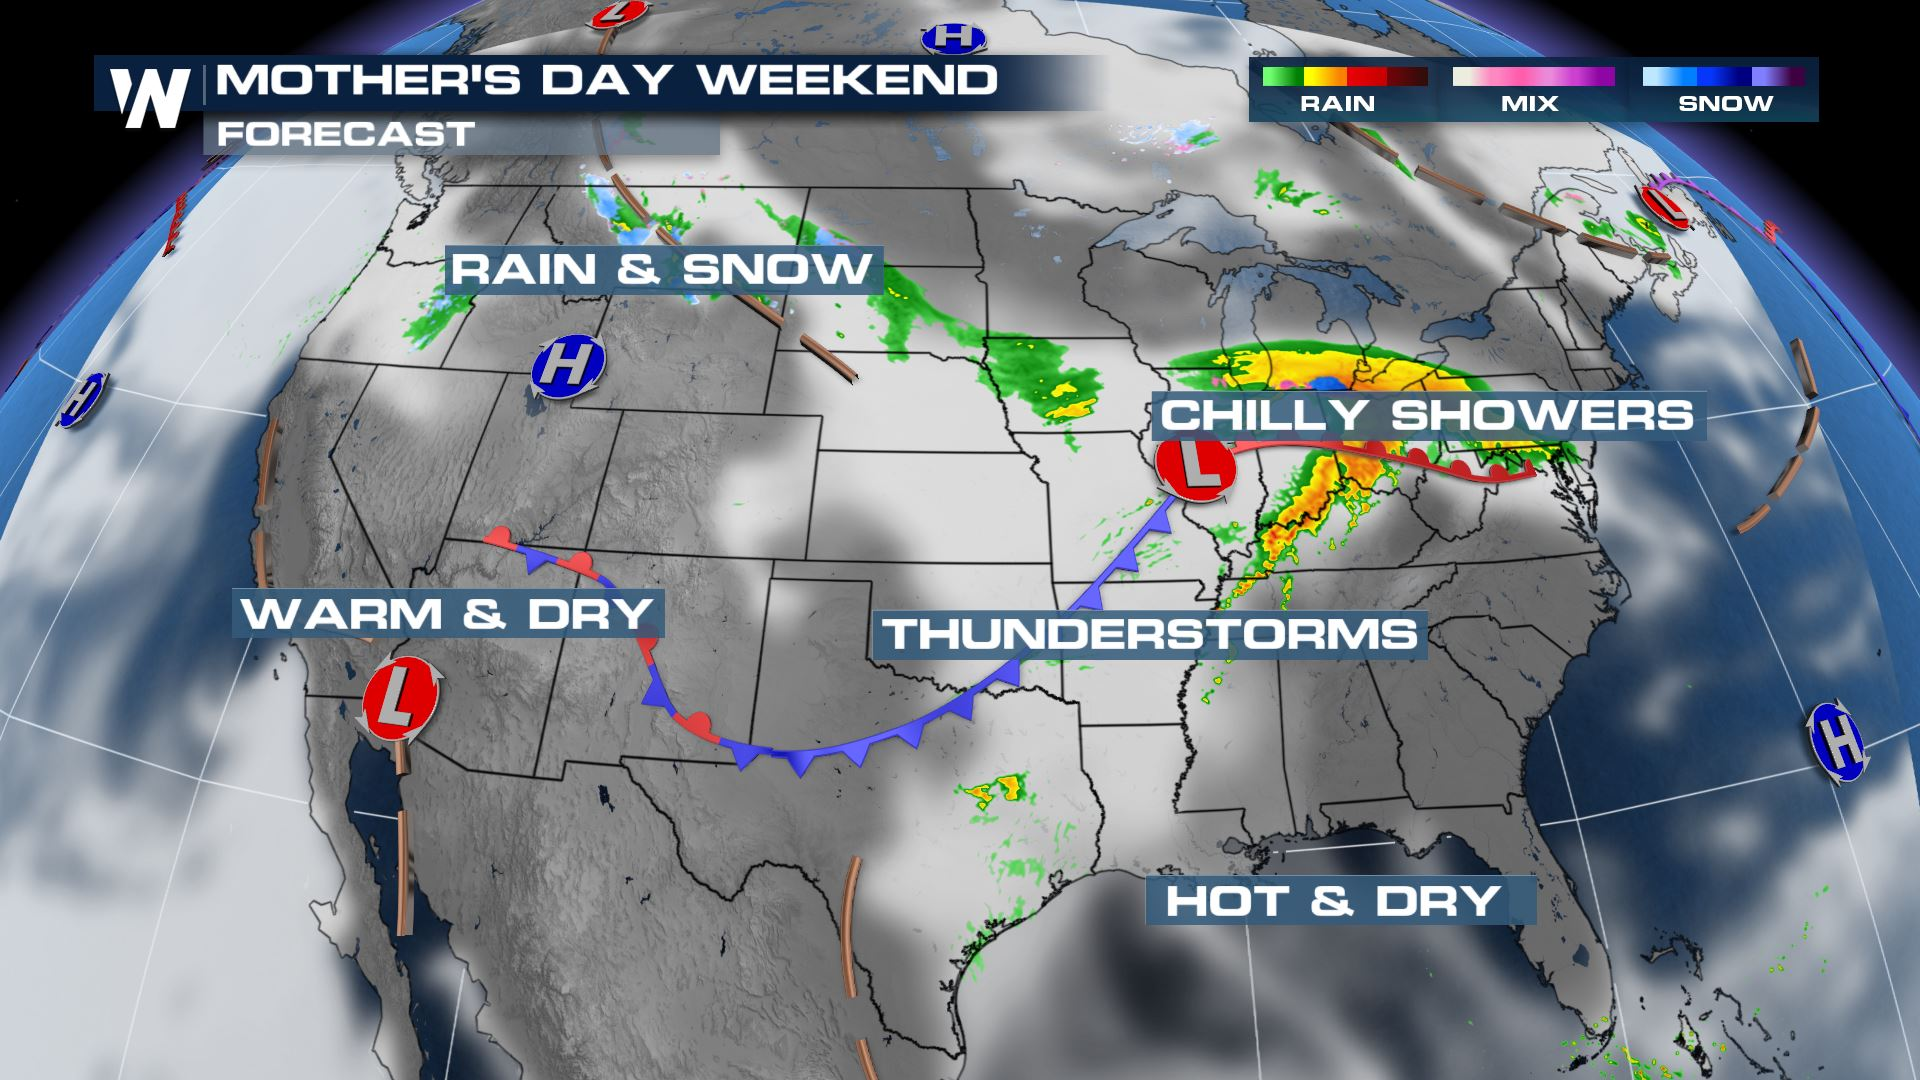 Mother's Day Weather: At A Glance